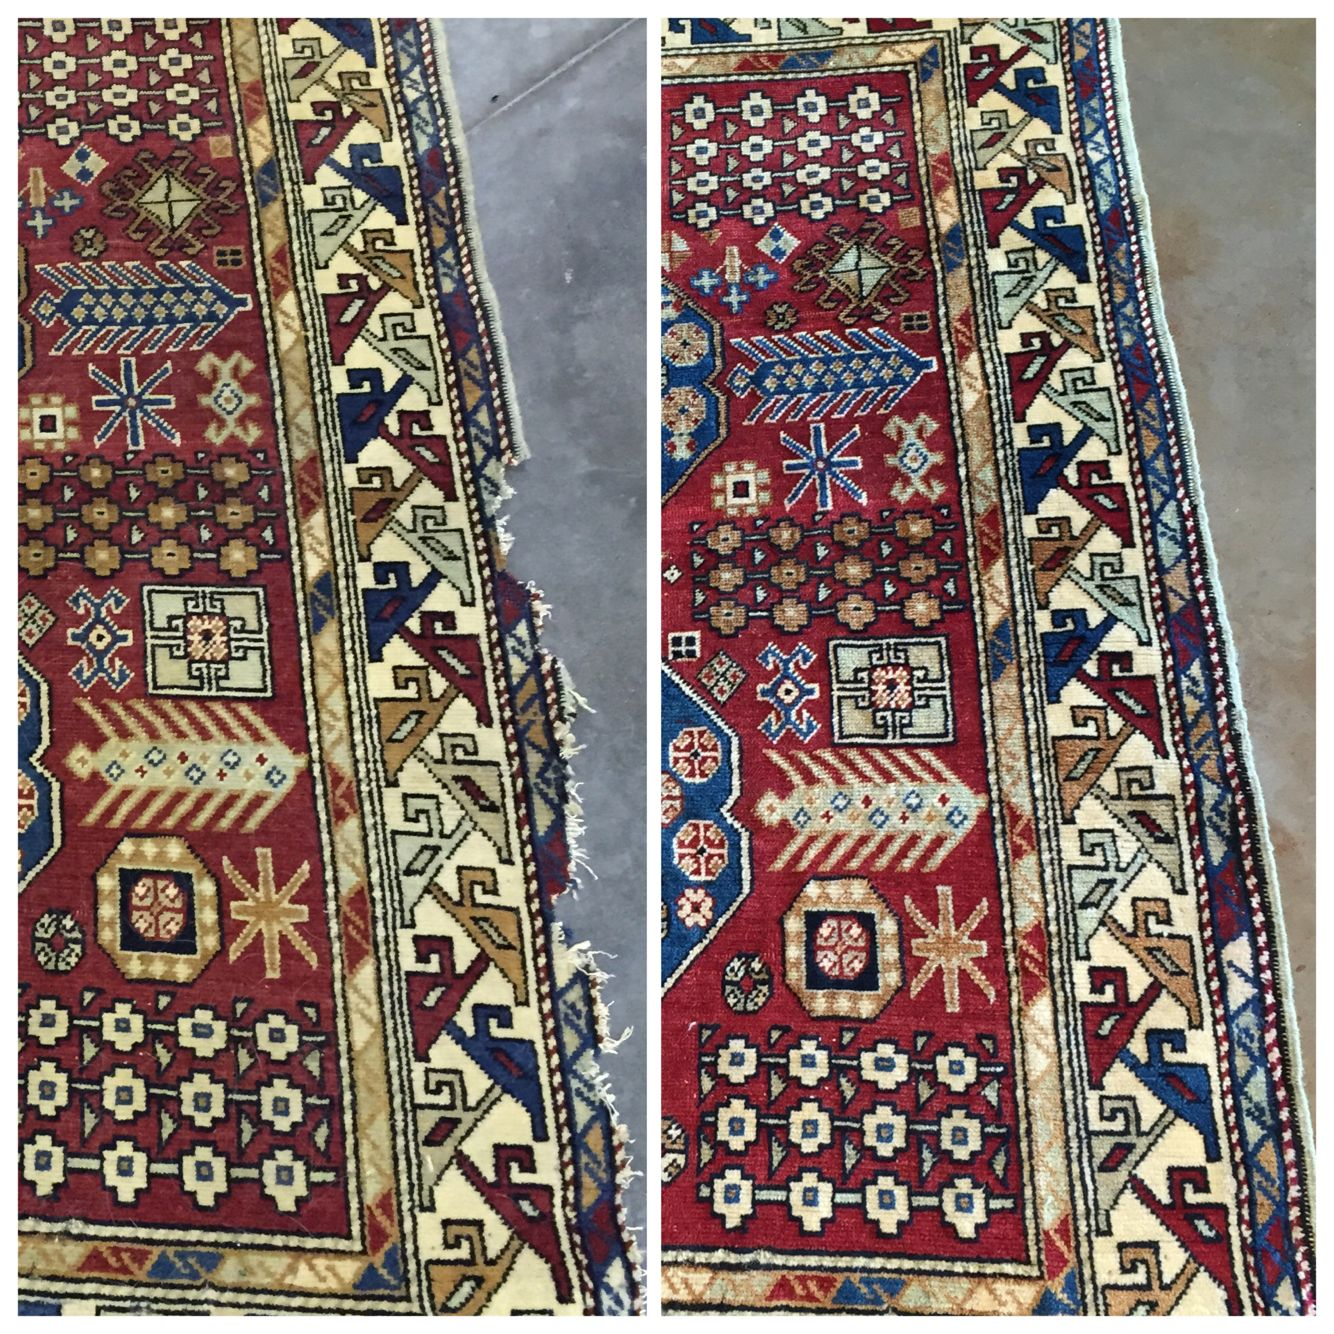 This beautiful Caucasian rug needed cleaning and repair. We are especially happy with how this one turned out! Big difference and so much brighter than before!! To clean and repair your rugs contact us through our website at www.aziarugs.com #arearugcleaning #aziaruggallery #orientalrugcleaning #antiques #restorations #rugrepair #rugs #runners #Ohio #cbus #ColumbusOhio